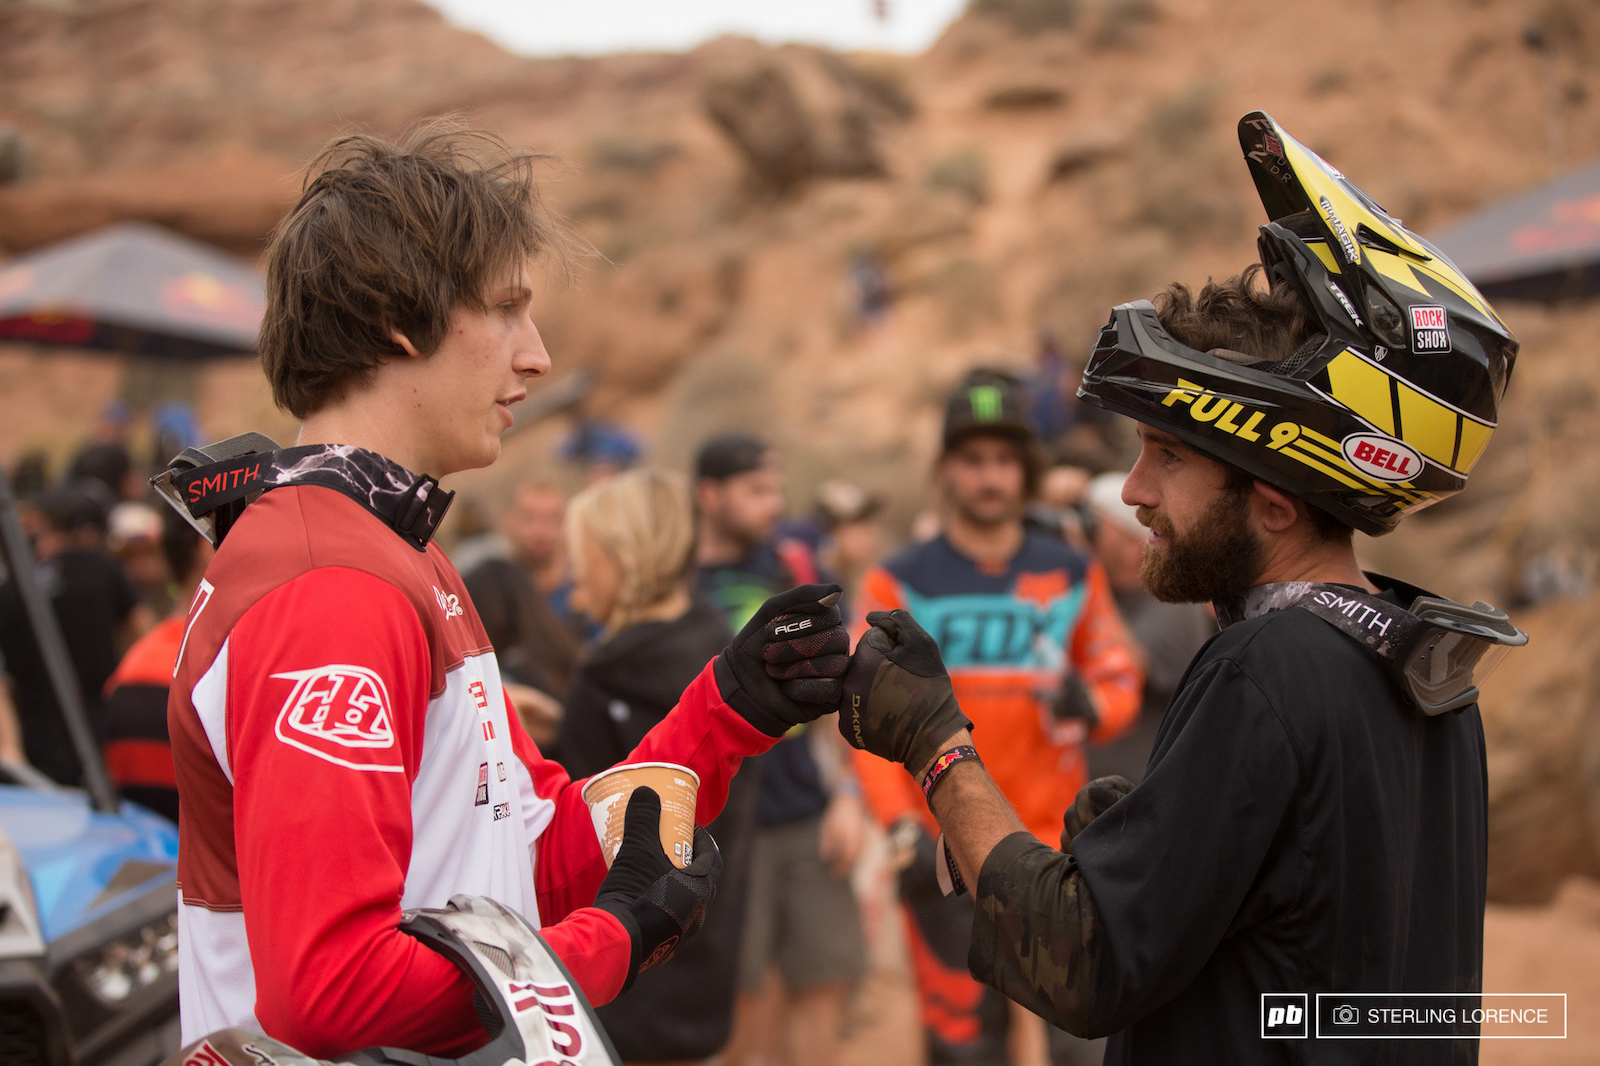 Semenuk and Rdog at RedBull Rampage 2015 Virgin Utah USA